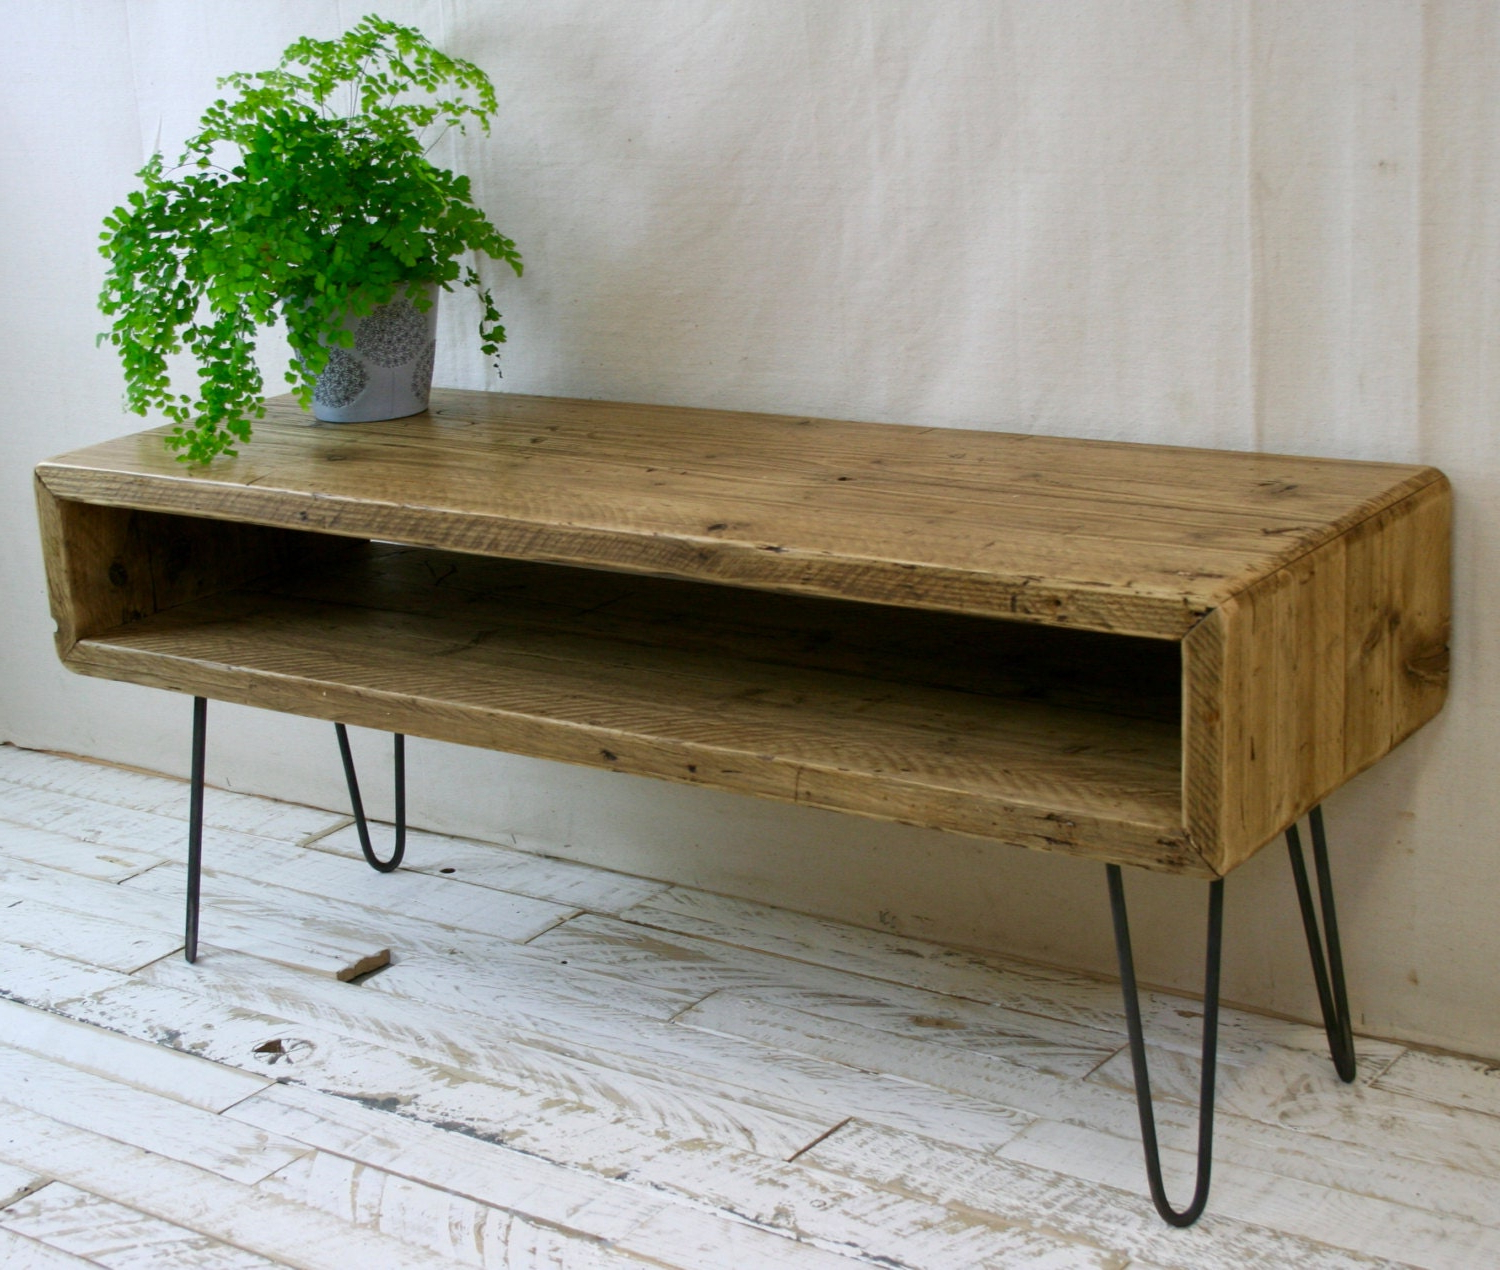 Etsy Regarding Current Industrial Tv Stands With Metal Legs Rustic Brown (View 2 of 10)